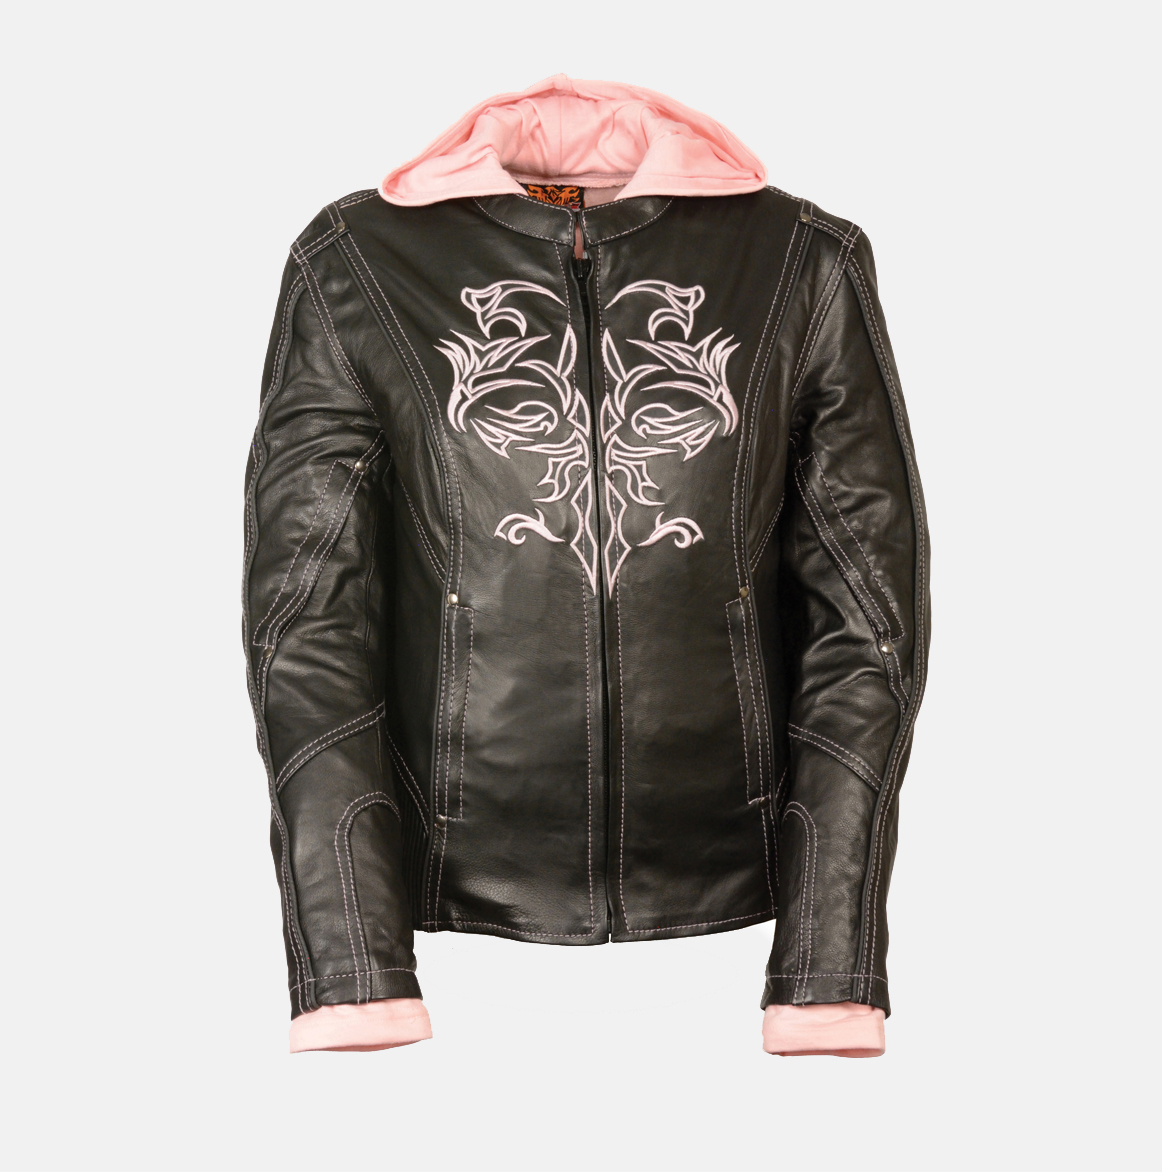 BLACK /PINK LEATHER JACKET W/ TRIBAL DETAIL - Bikers Gear Online USA